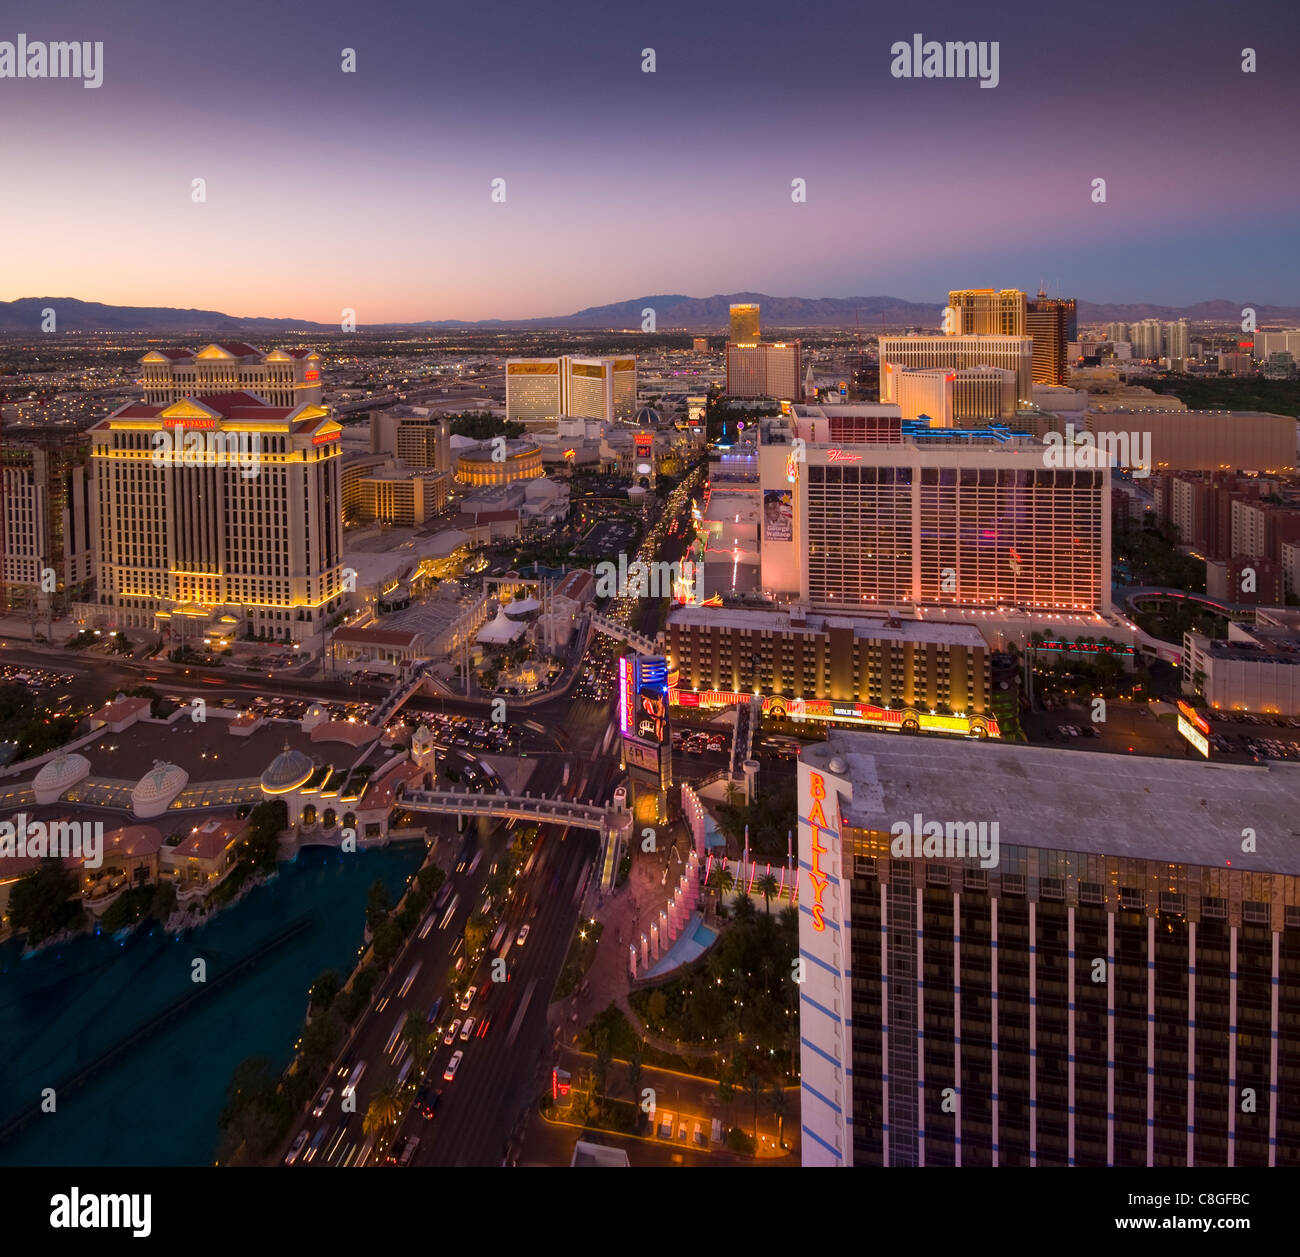 The Strip, Las Vegas, Nevada, United States of America - Stock Image